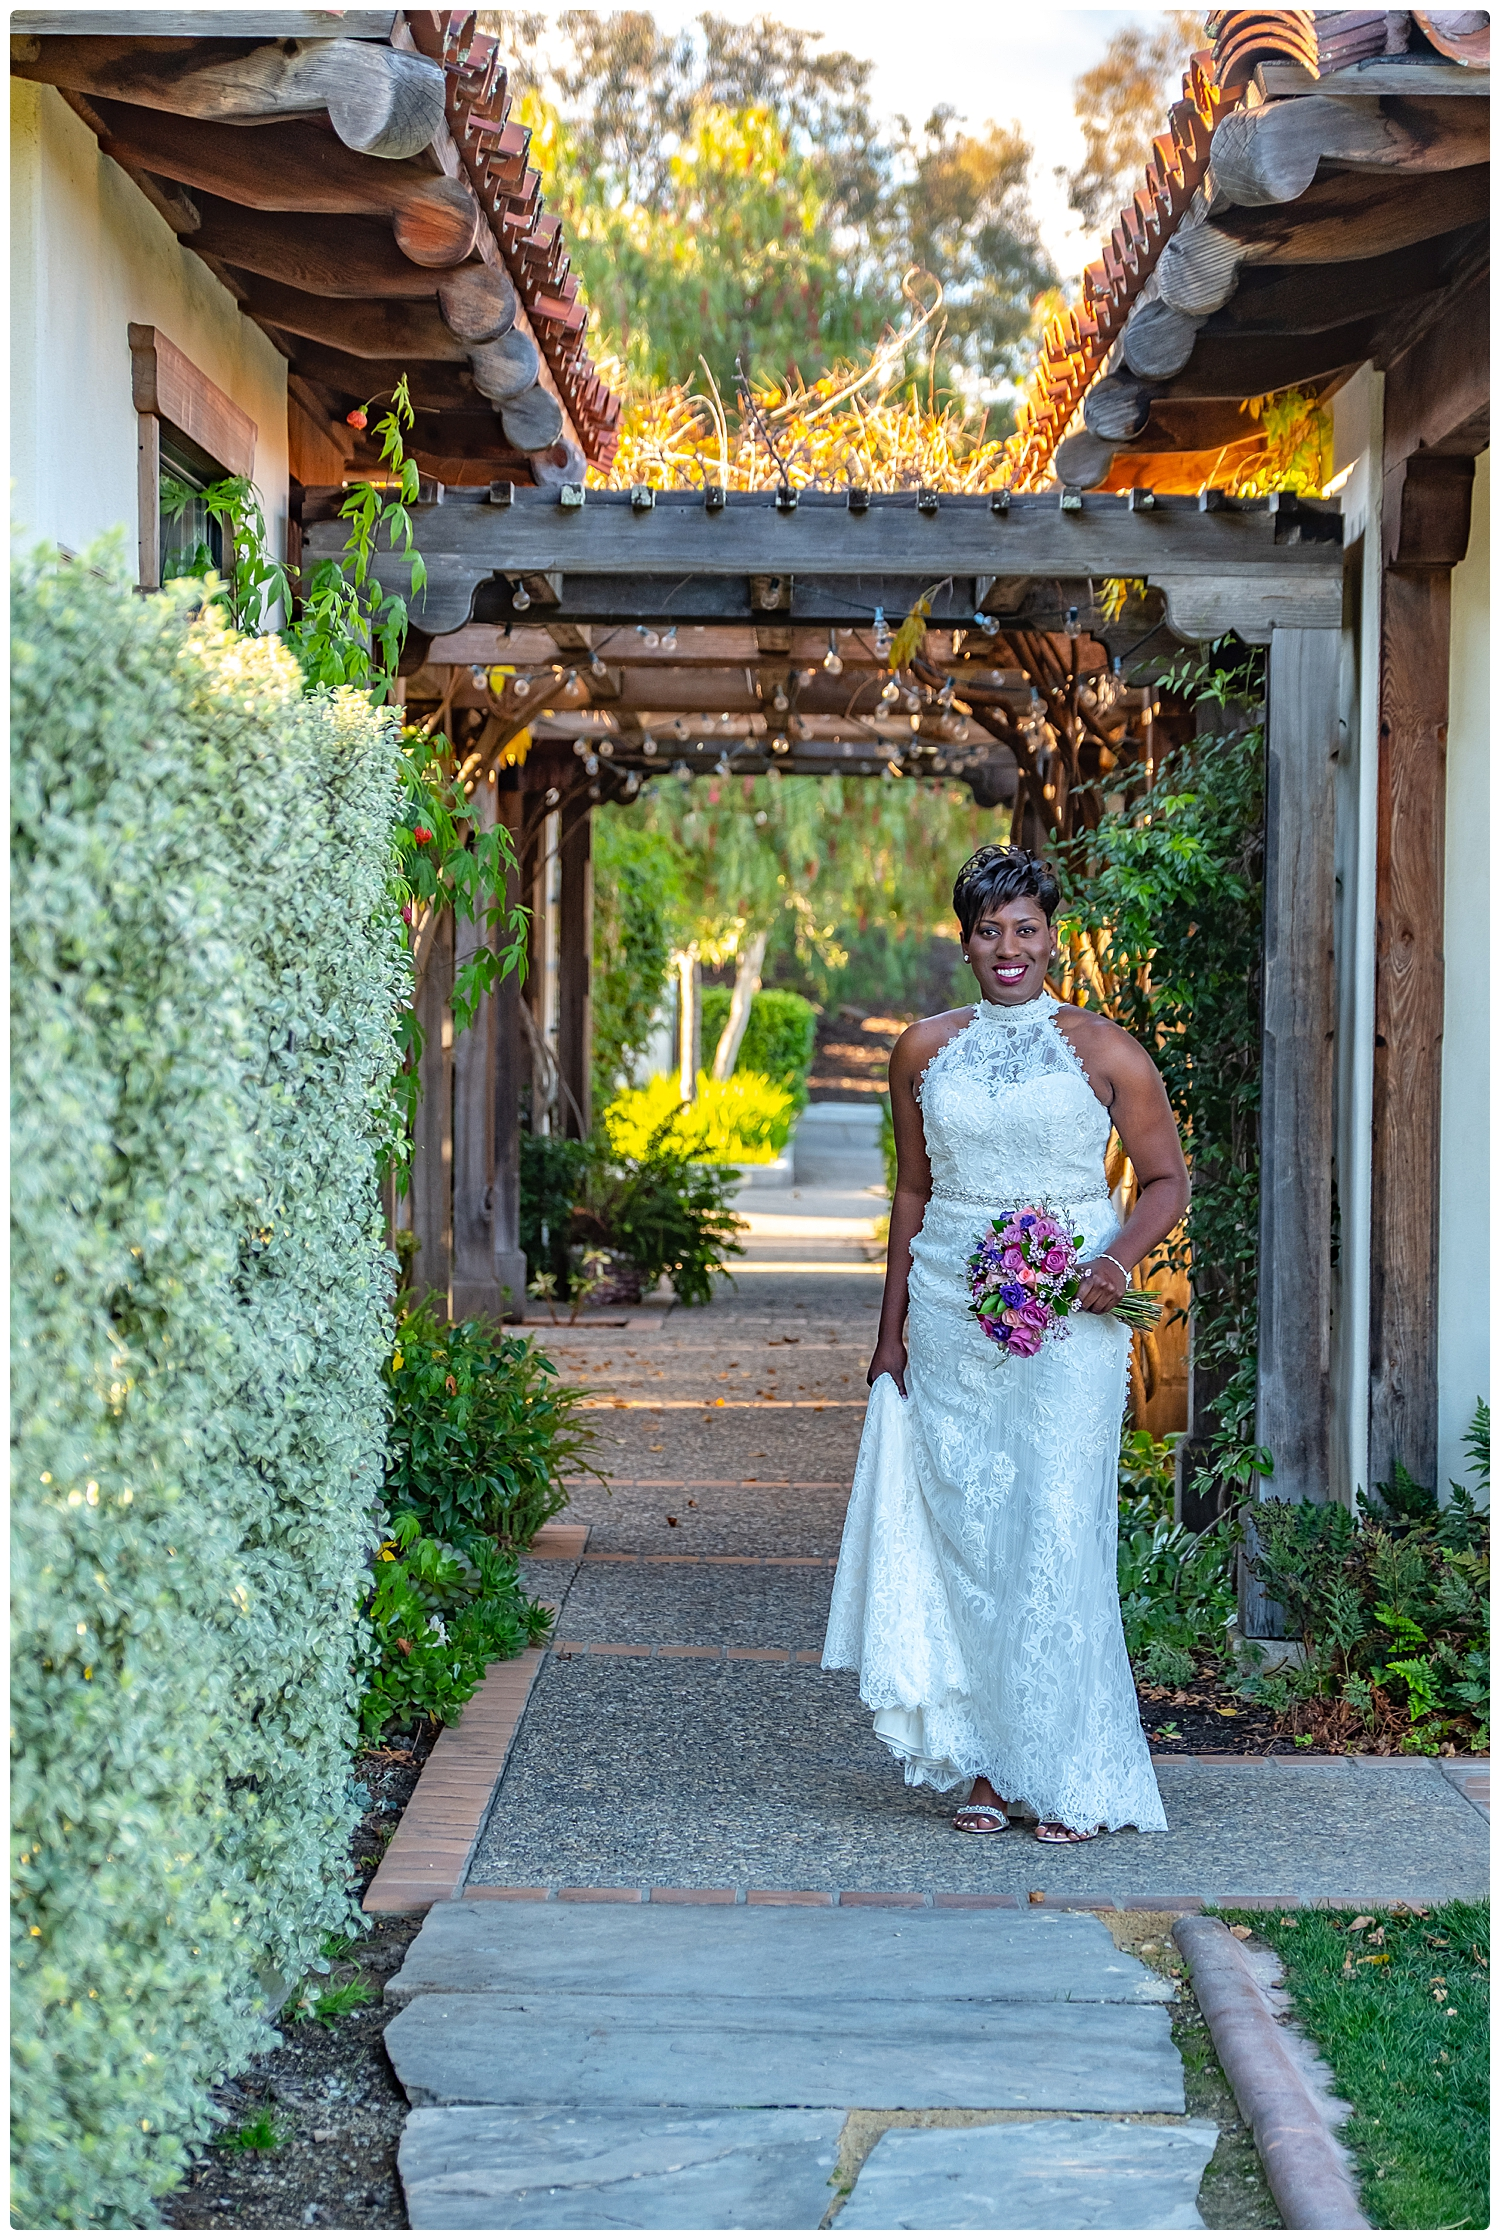 New Years Eve intimate wedding_Renoda Campbell Photography_LGBT wedding_0042.jpg